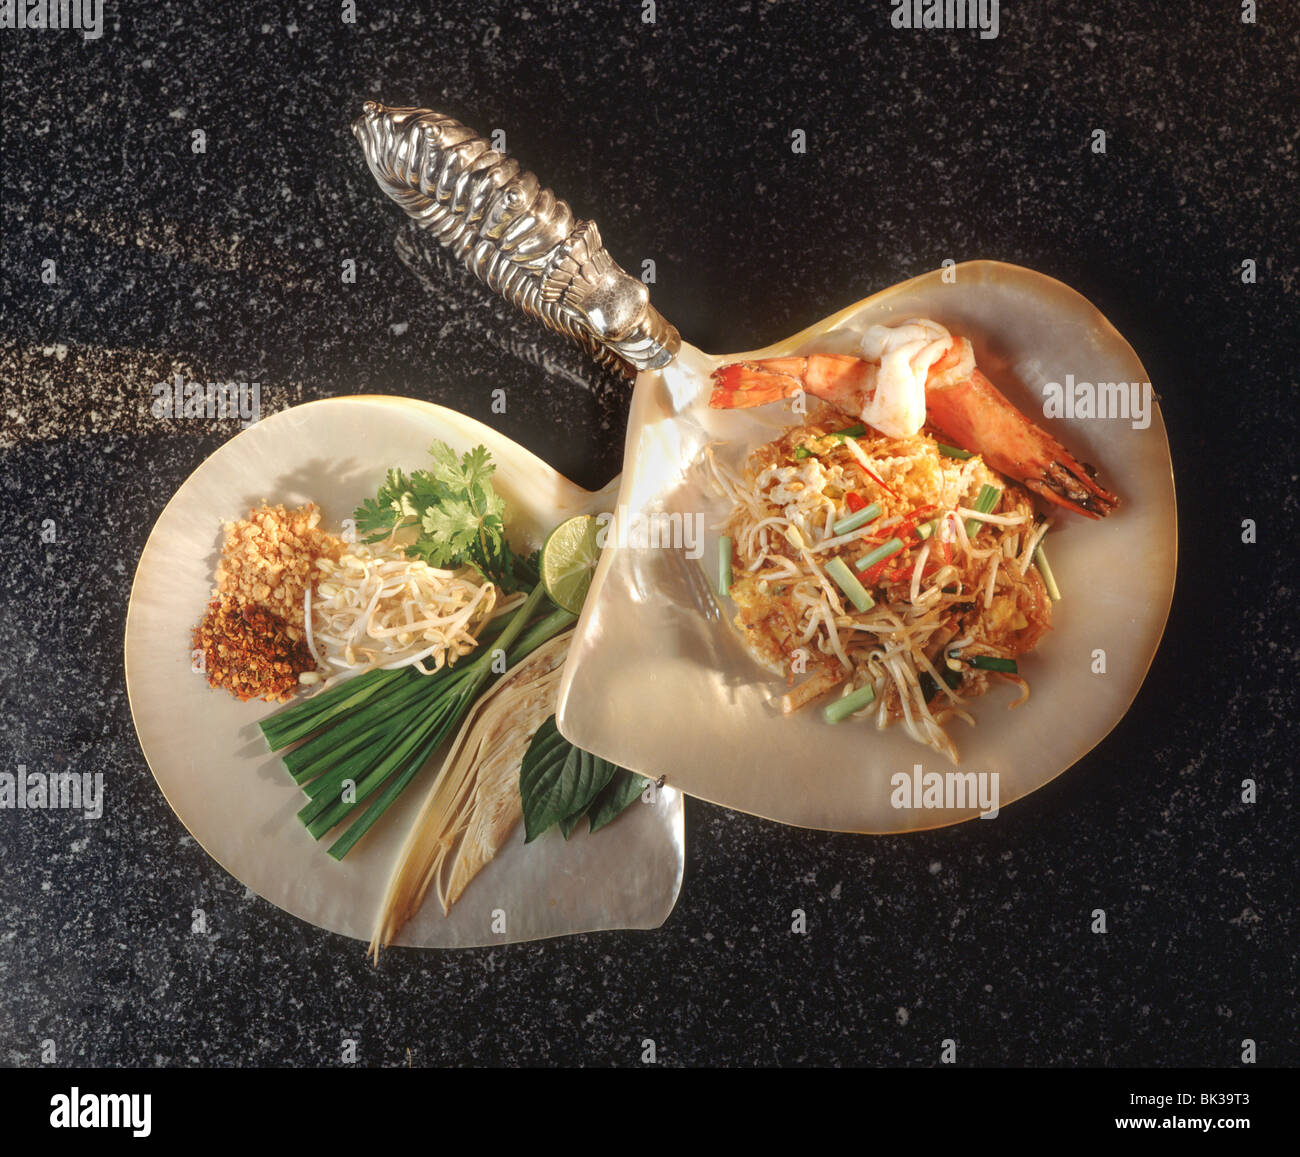 Thai style noodles, a typical noodle dish, Thailand, Southeast Asia, Asia - Stock Image